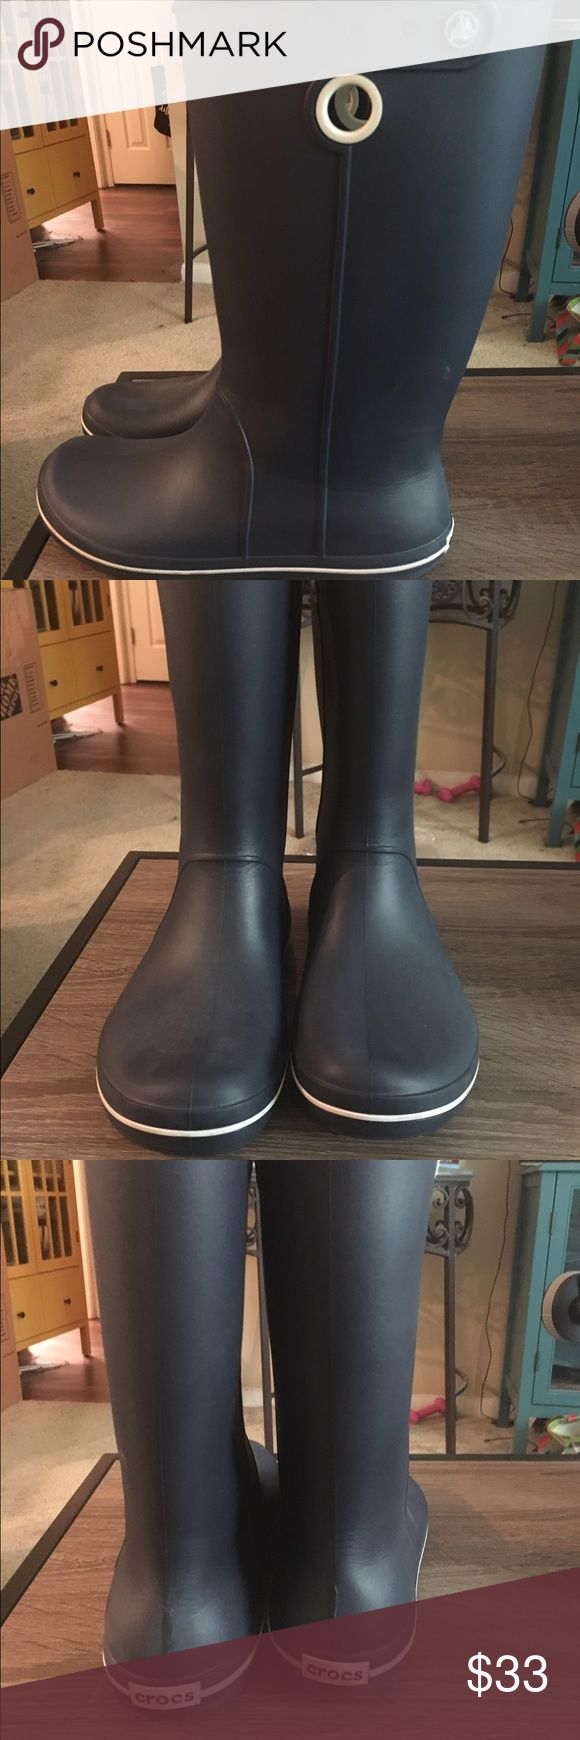 Size 10 navy blue Crocs Wellies Worn twice and in great shape! Water resistant boots. CROCS Shoes Winter & Rain Boots